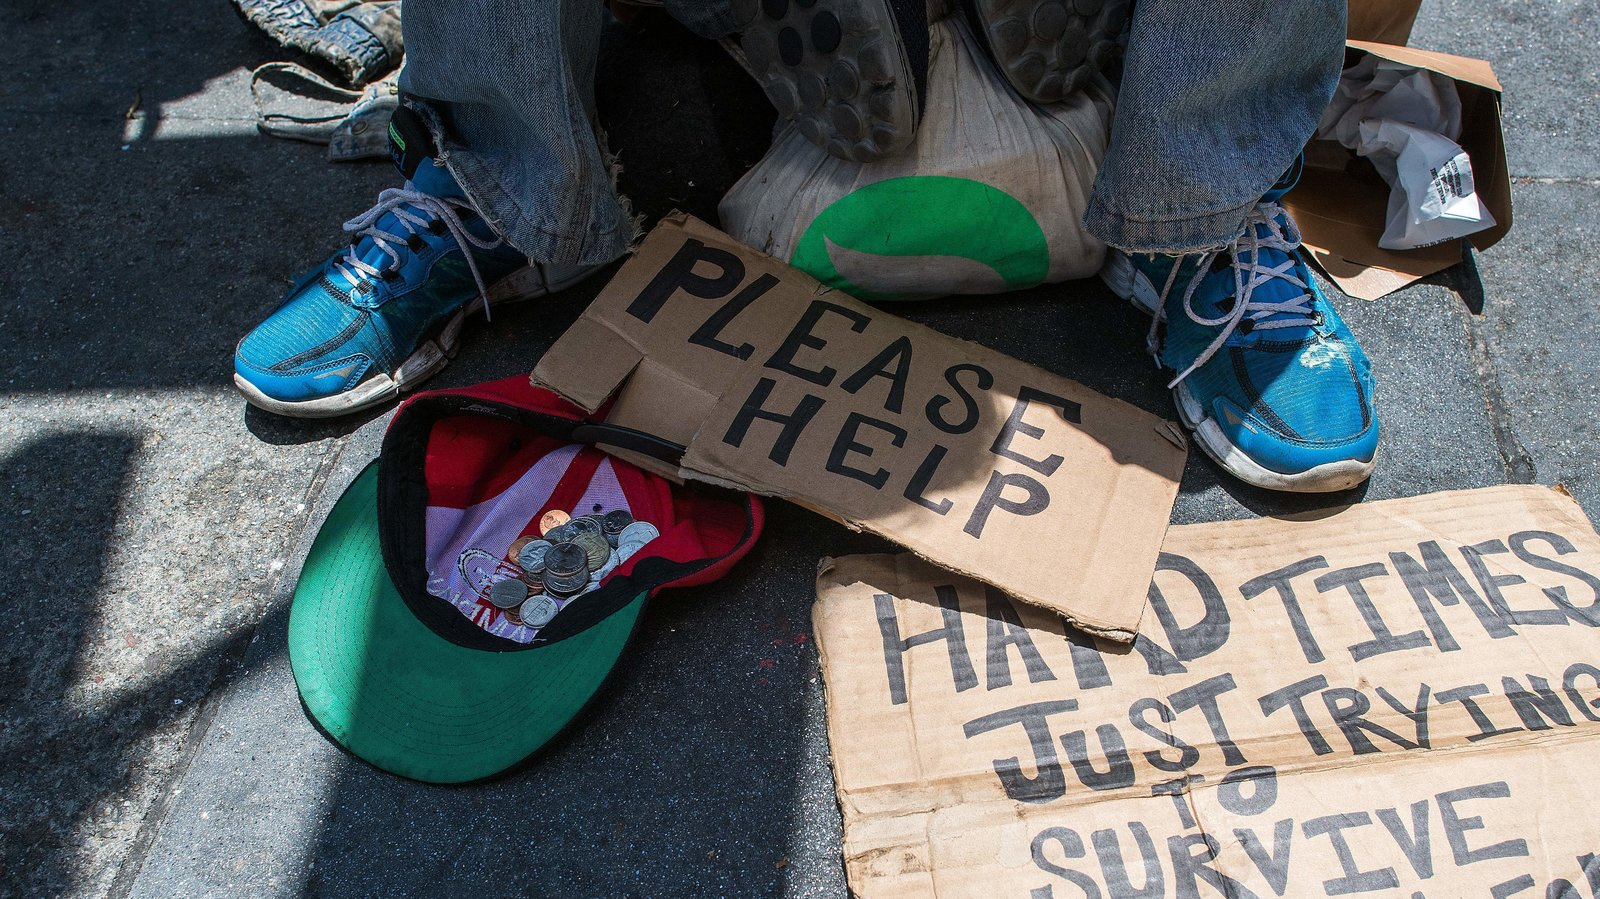 Andrew Loy begs along a sidewalk in San Francisco, Calif. on June 28, 2016. (Photo by Josh Edelson/AFP/Getty Images)